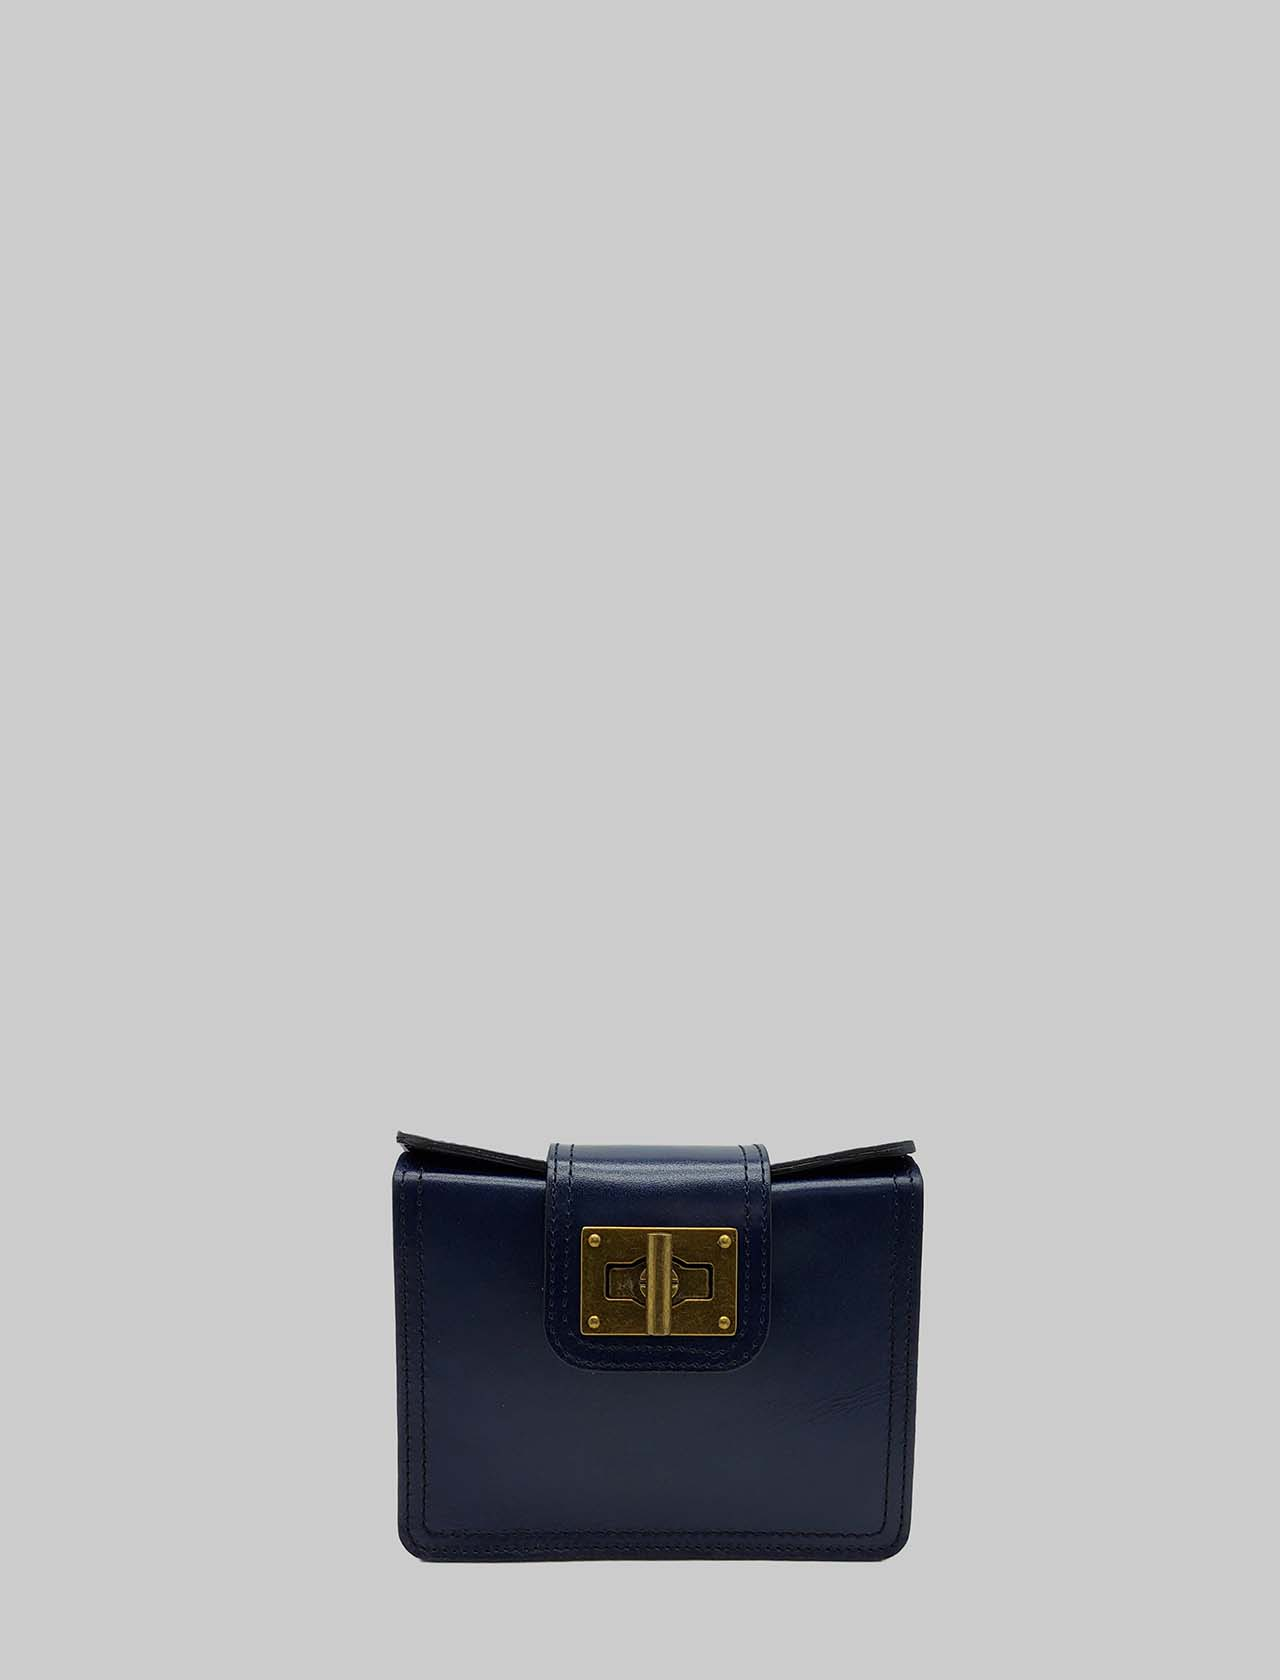 Women's Bags Clutch in blue Leather with Small Rigid Shoulder Strap in Adjustable Leather Spatarella | Bags and backpacks | PE0204002